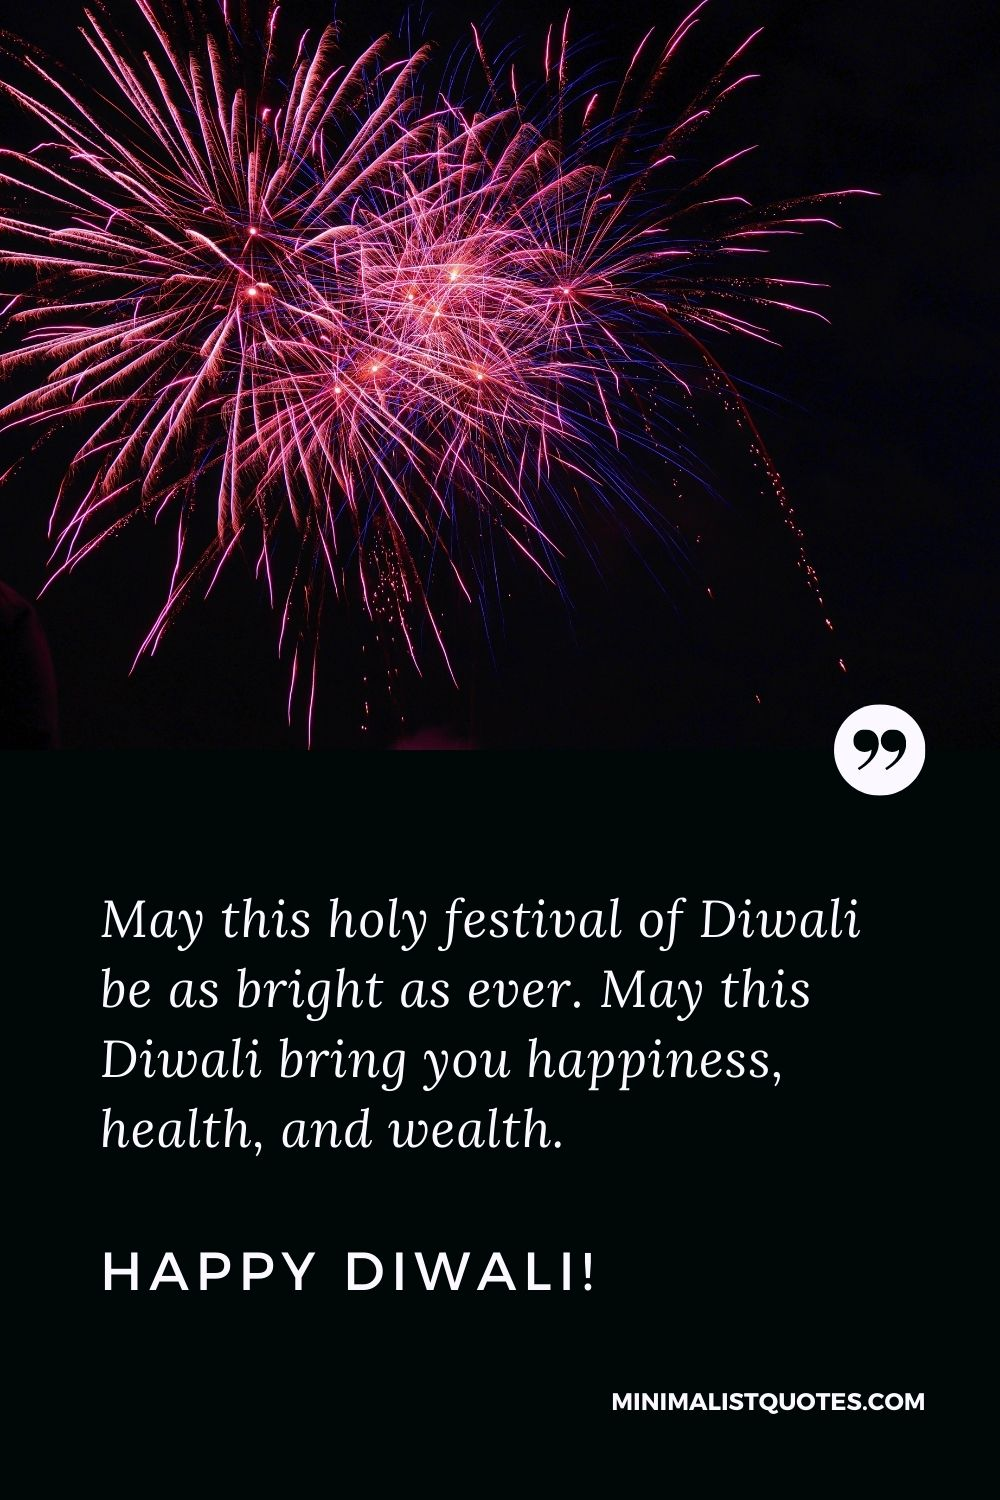 Diwali Quote, Wish & Message With Image: May this holy festival of Diwali be as bright as ever. May this Diwali bring you happiness, health, and wealth. Happy Diwali!